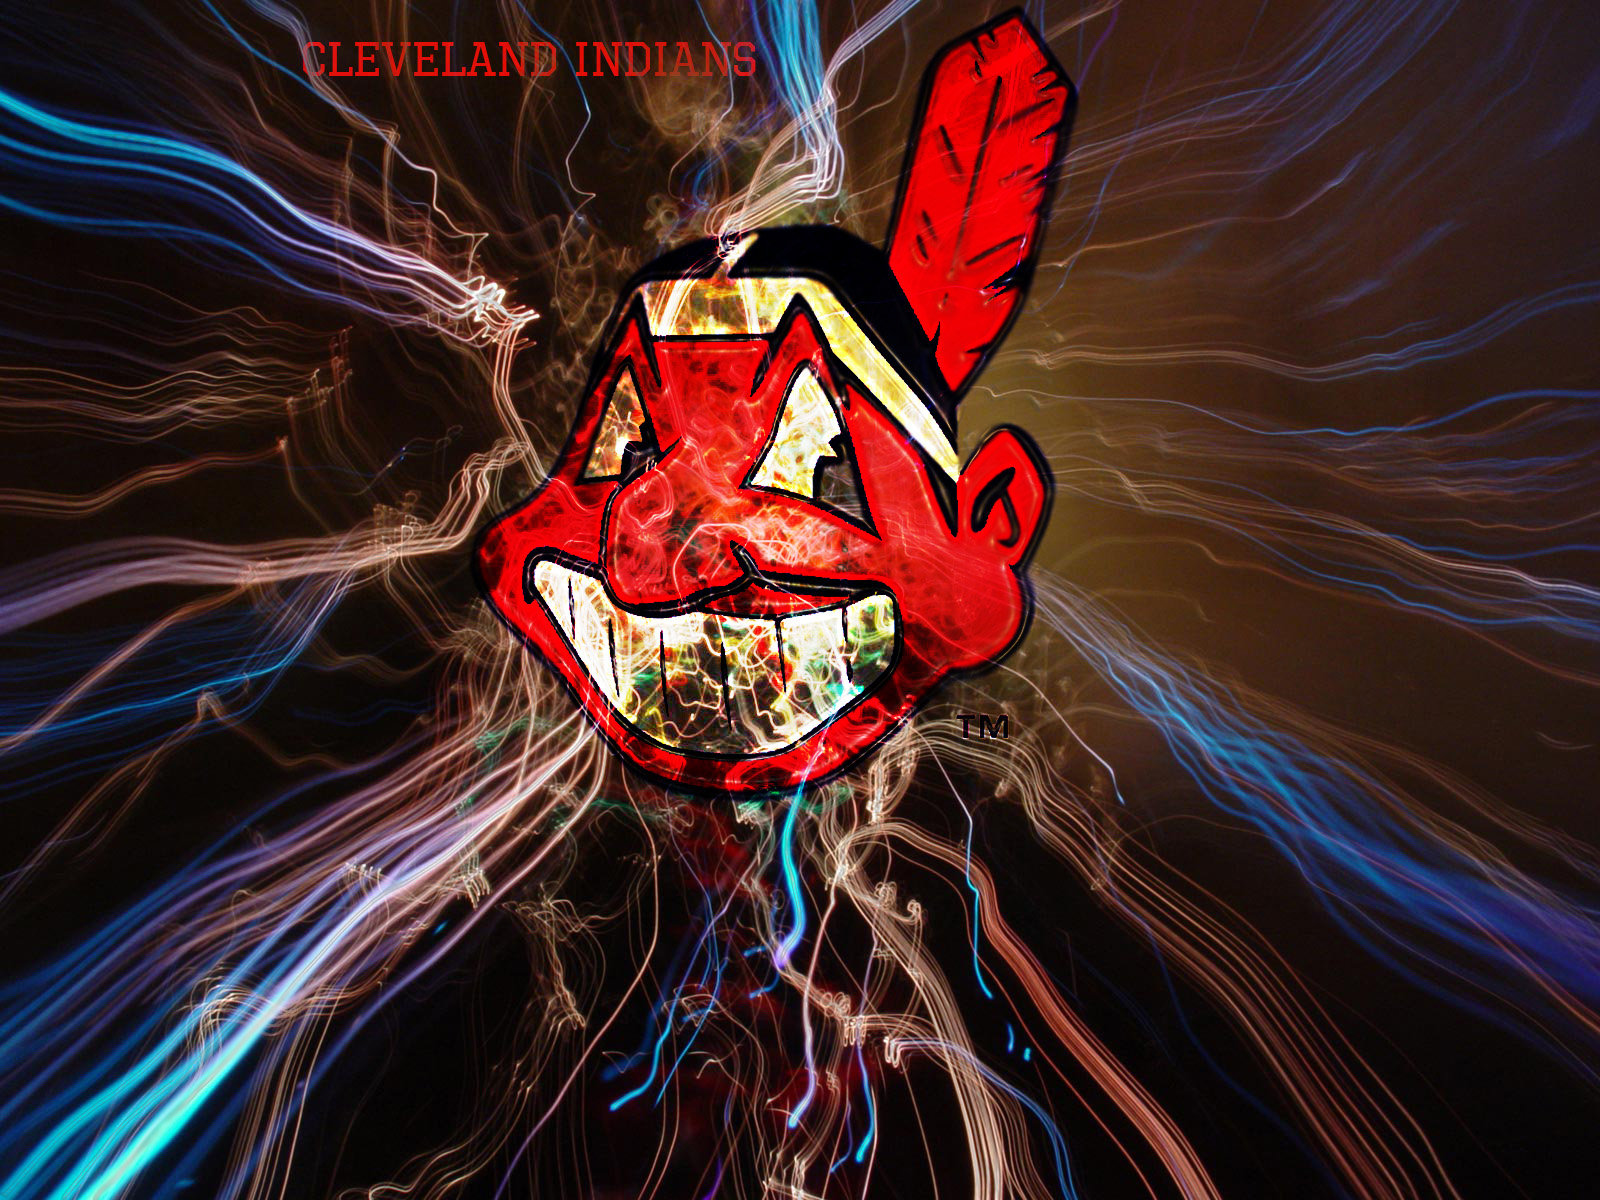 Cleveland Indians wallpapers Cleveland Indians background   Page 2 1600x1200